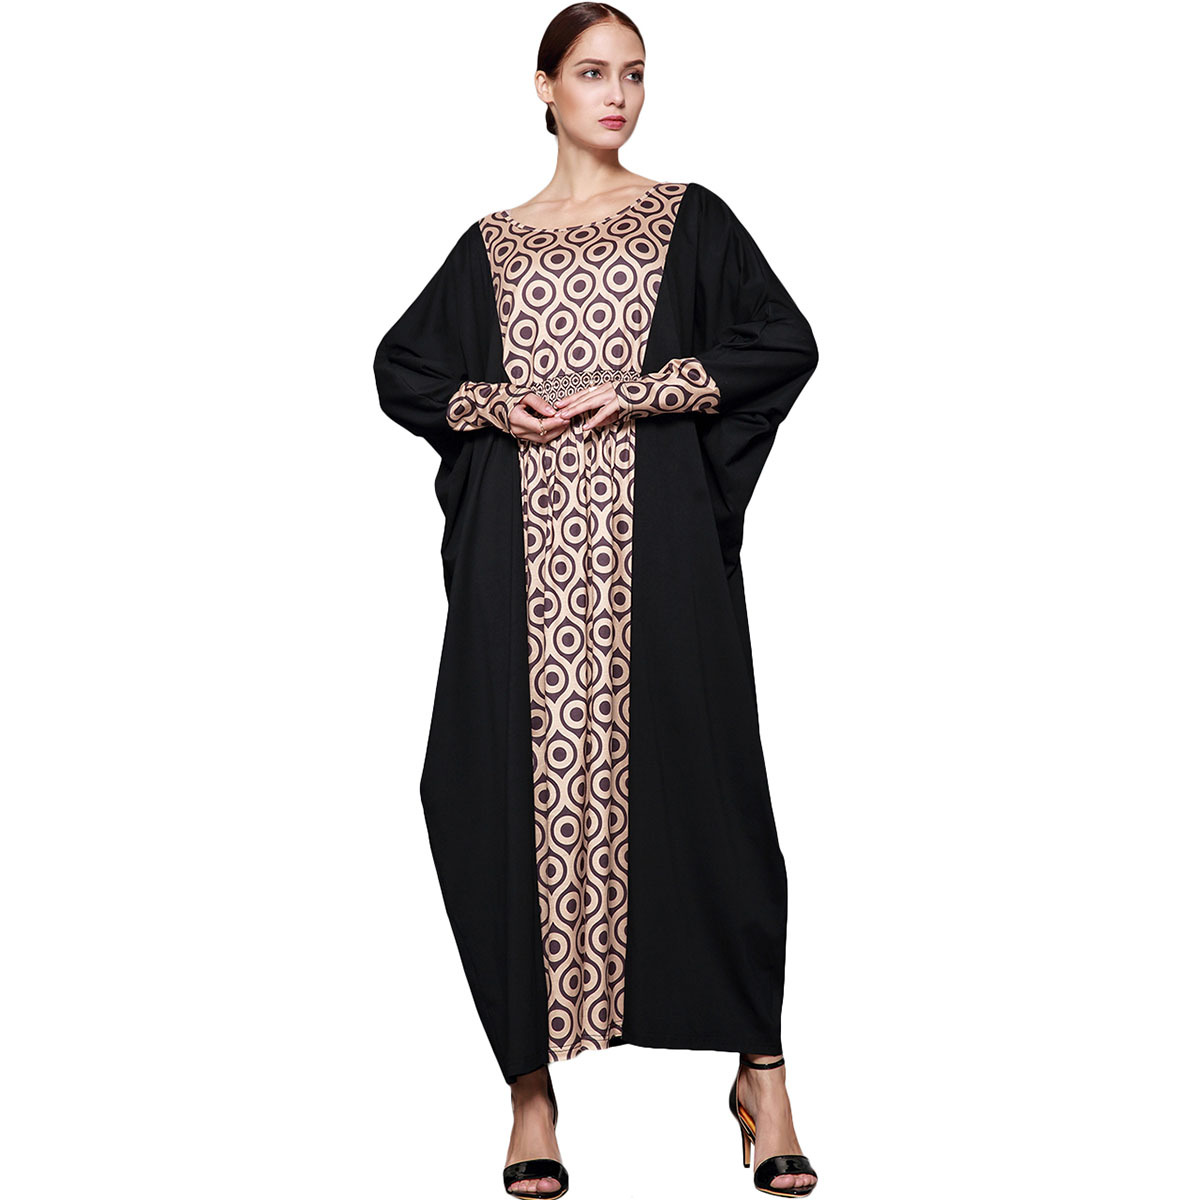 Jilbabs And Abayas Special Offer Time-limited Adult Cotton Robe Musulmane 2017 Classic Stitching Plus Long Muslim Women Abaya